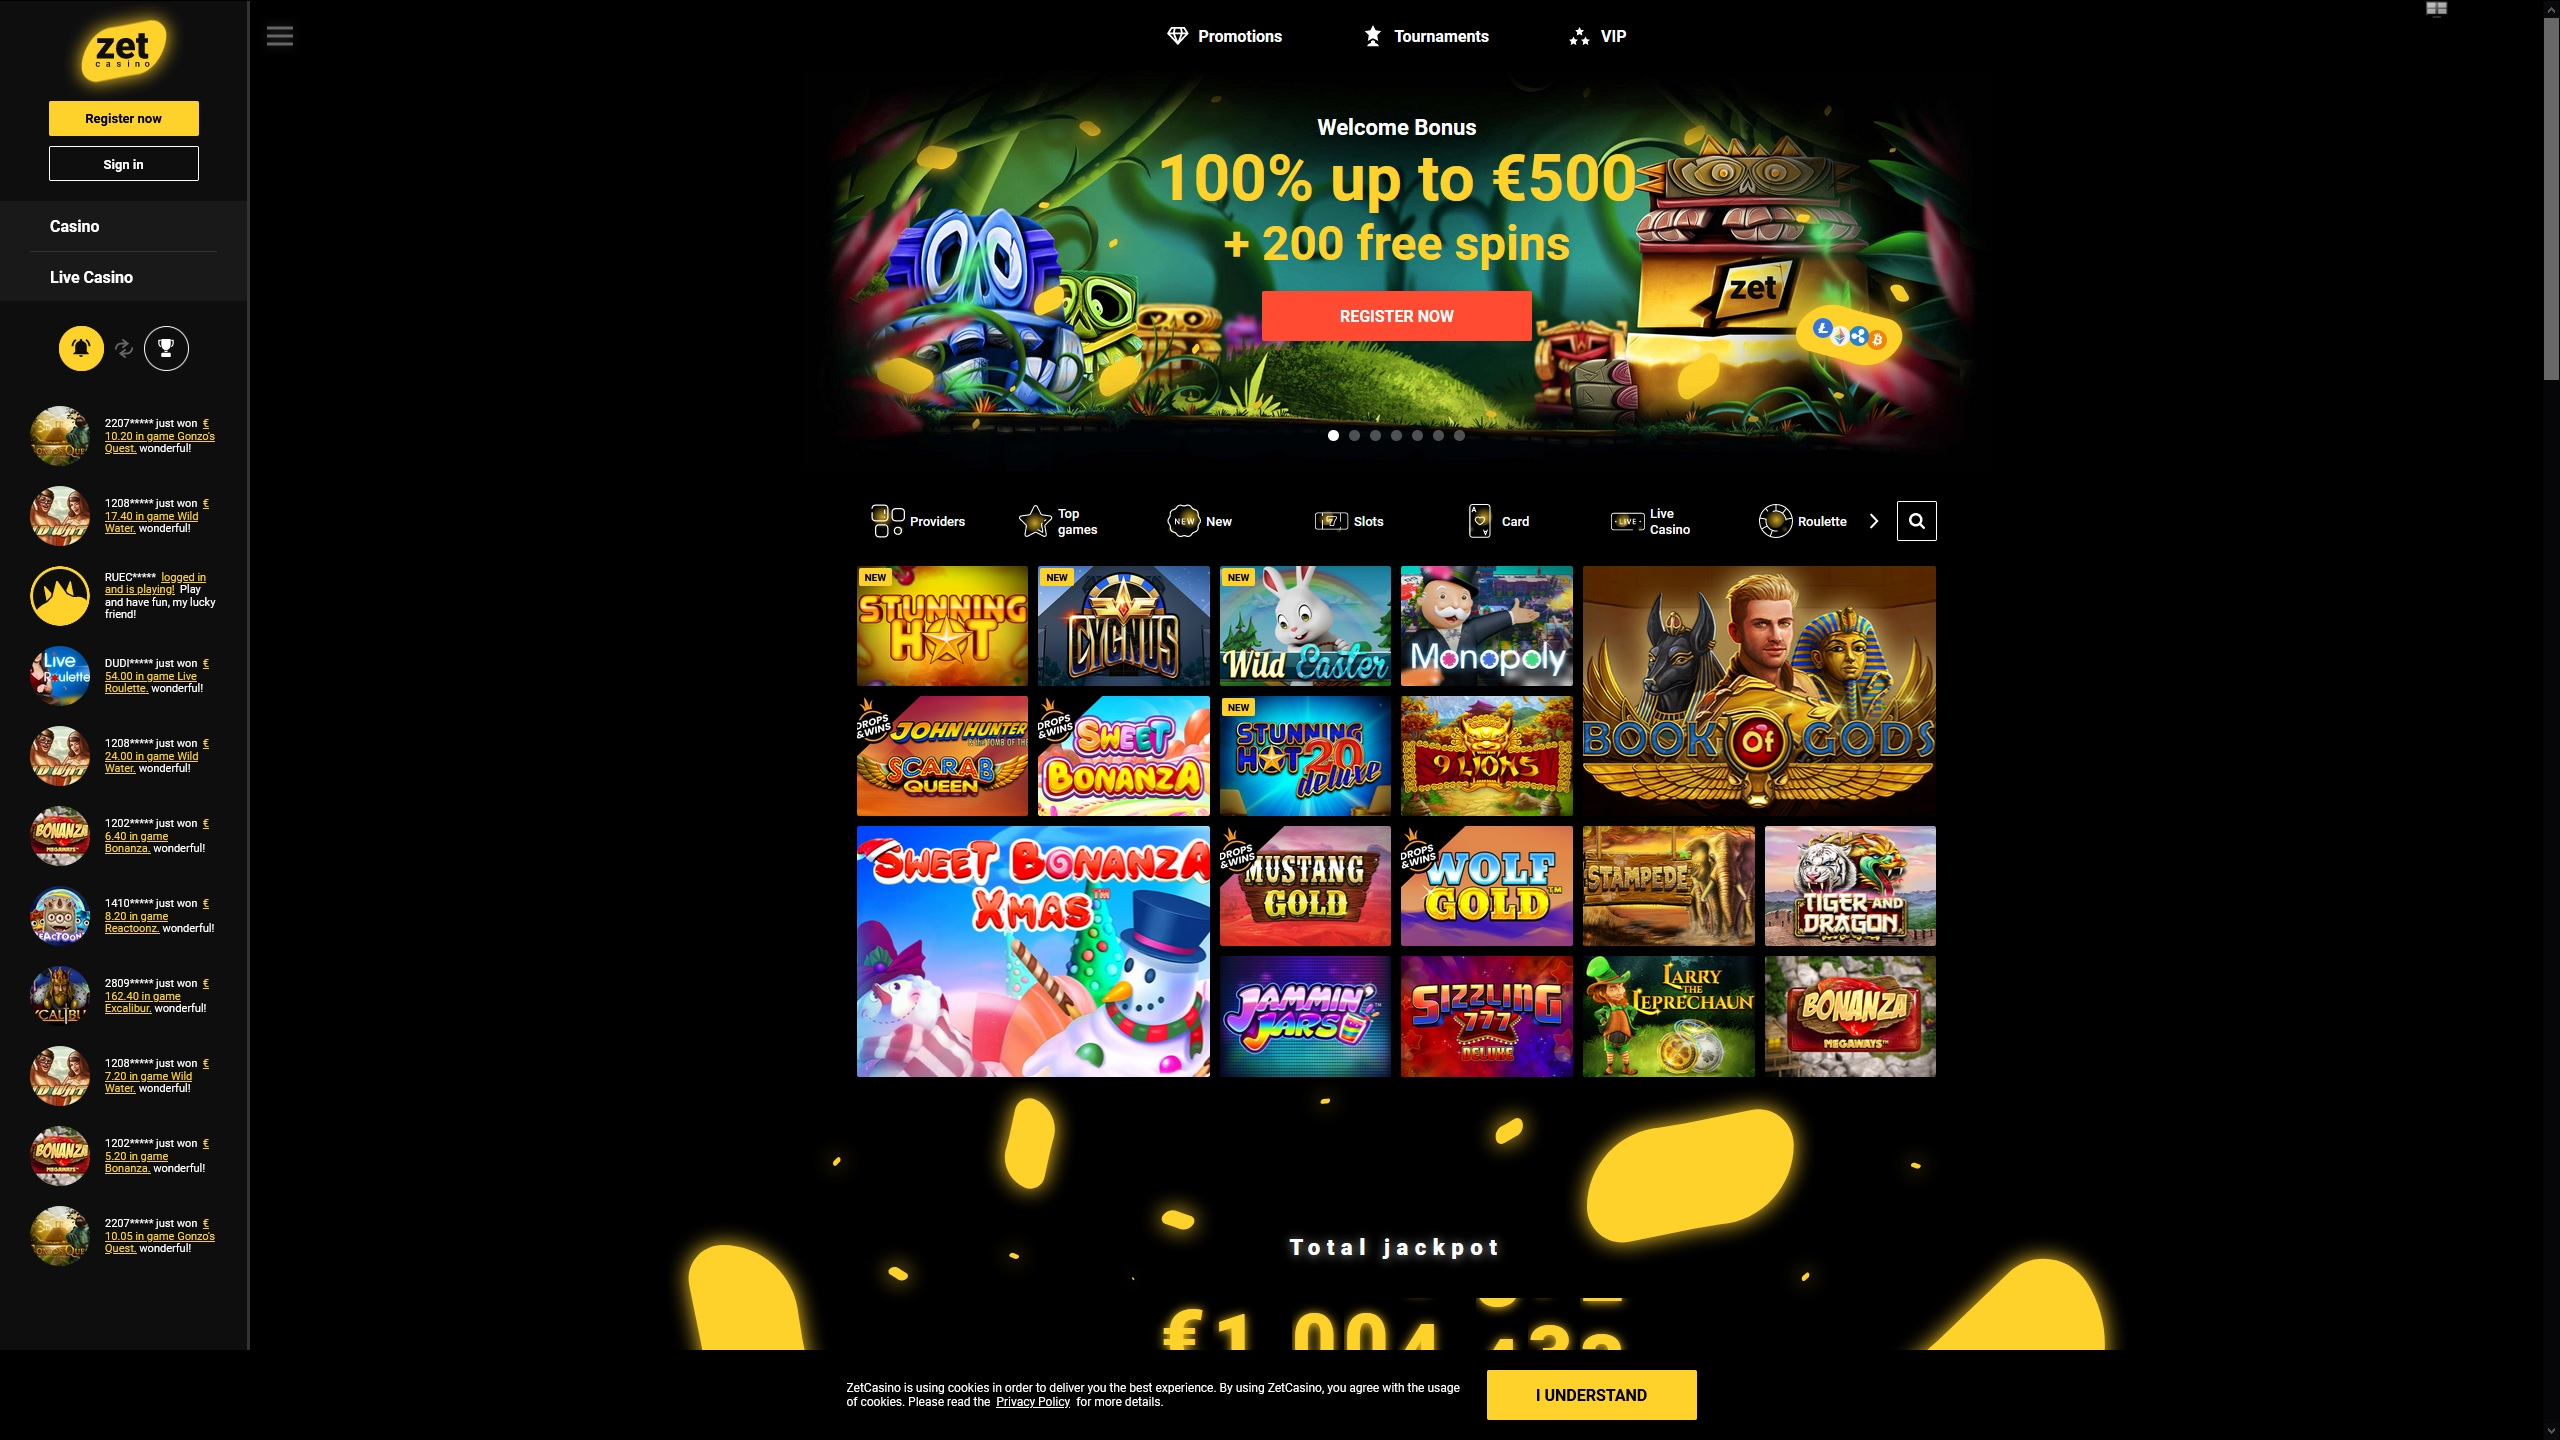 Zet Casino First Look